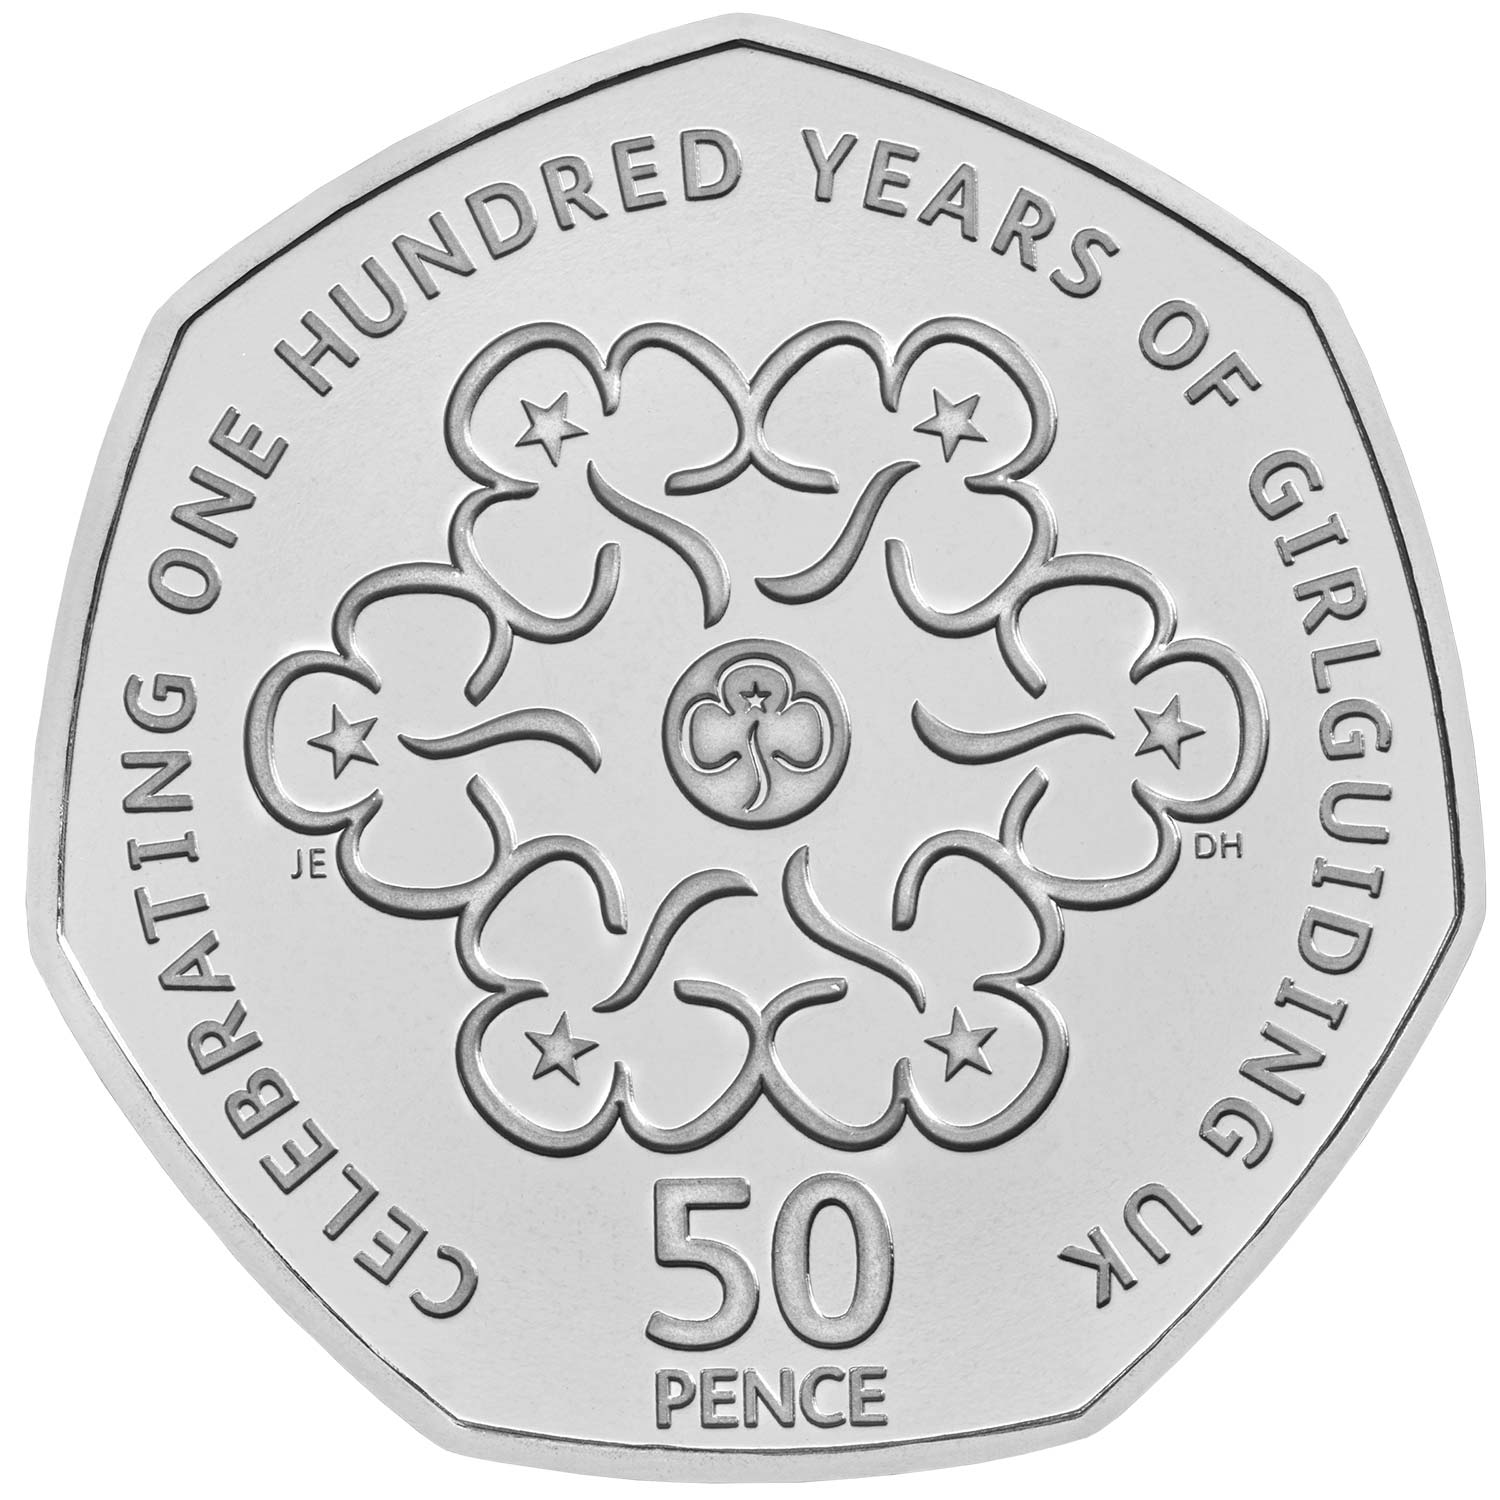 2019 Girl Guides 50p